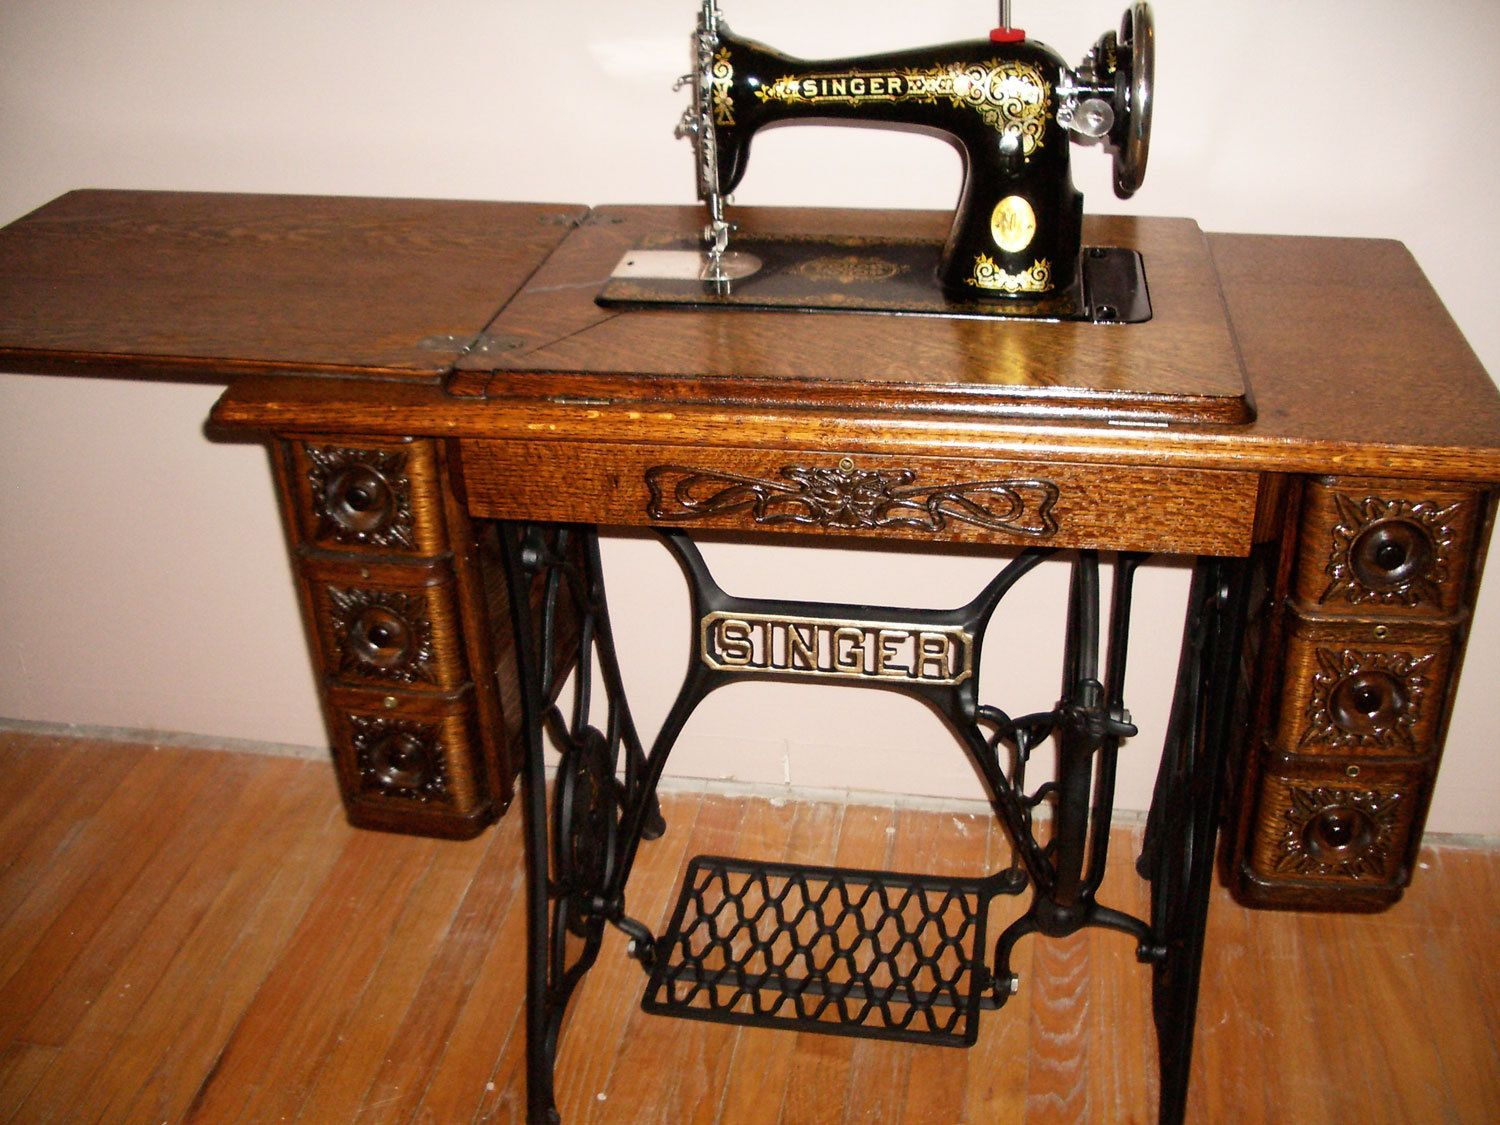 Singer treadle sewing machine - one similar to the one my ...